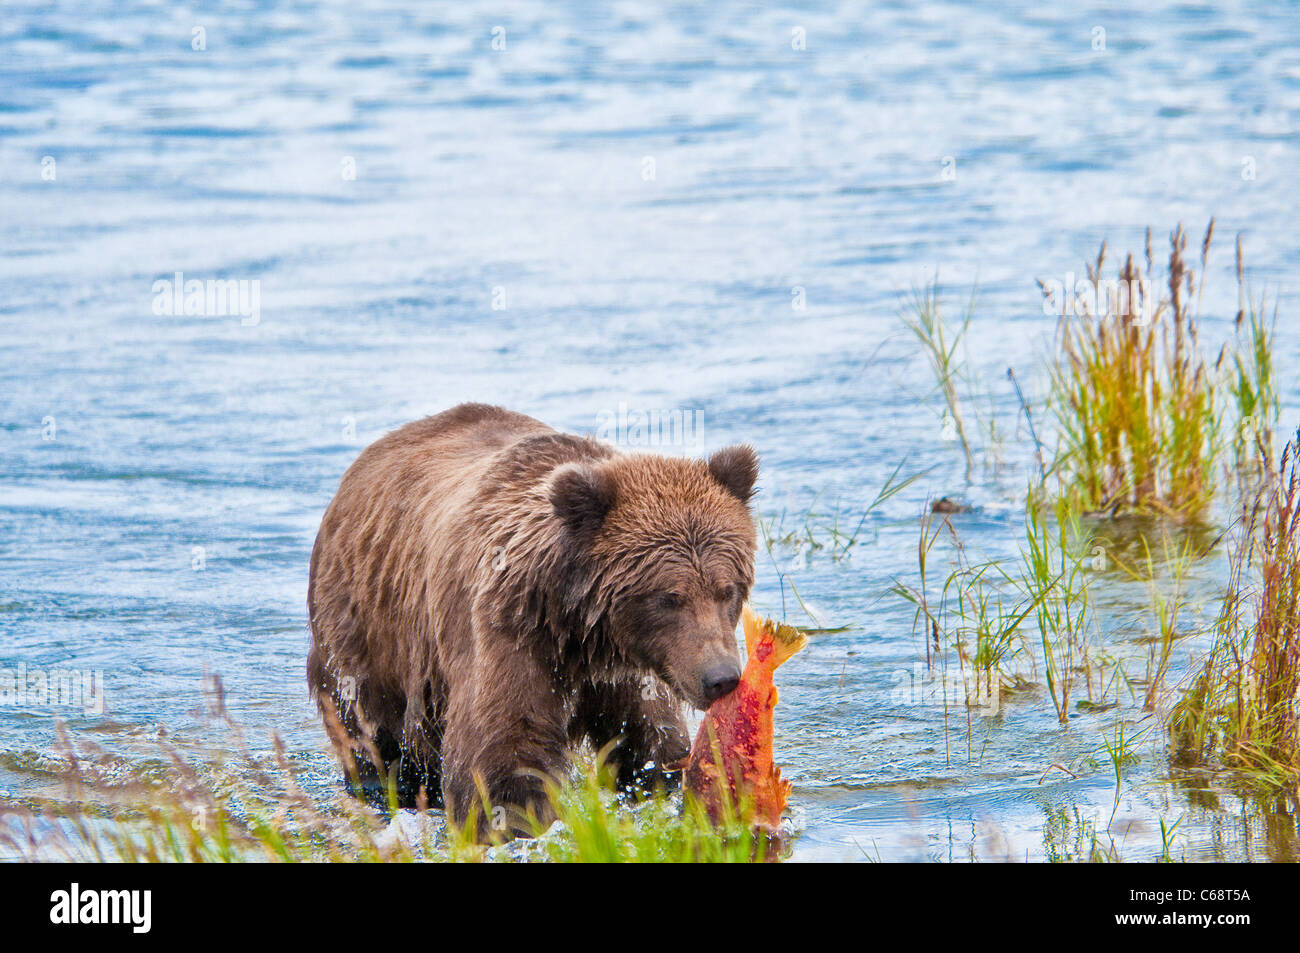 Grizzly Bear Cub portando il salmone, Ursus arctos horriblis, fiume Brooks, Katmai National Park, Alaska, STATI Immagini Stock